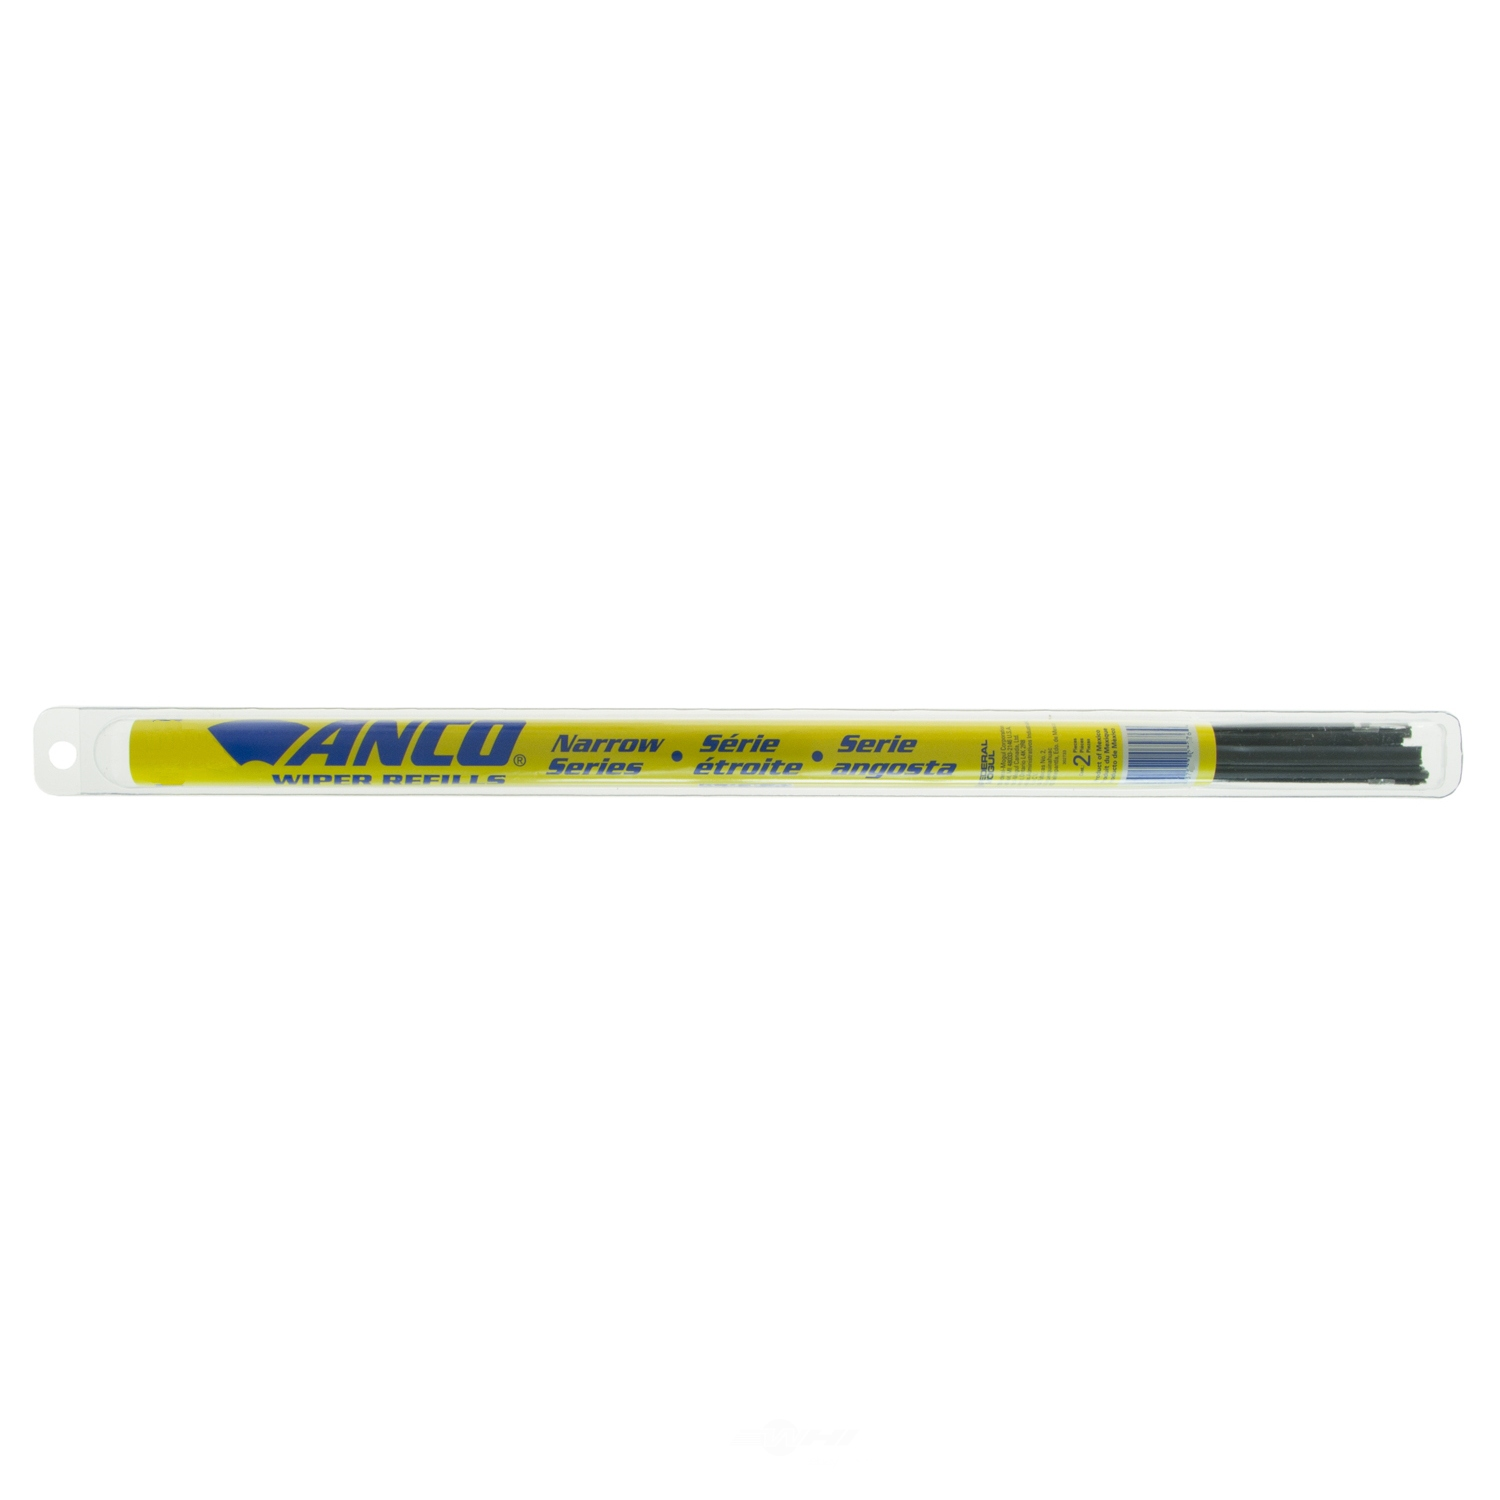 ANCO WIPER PRODUCTS - Narrow Series Refills - ANC N-17R